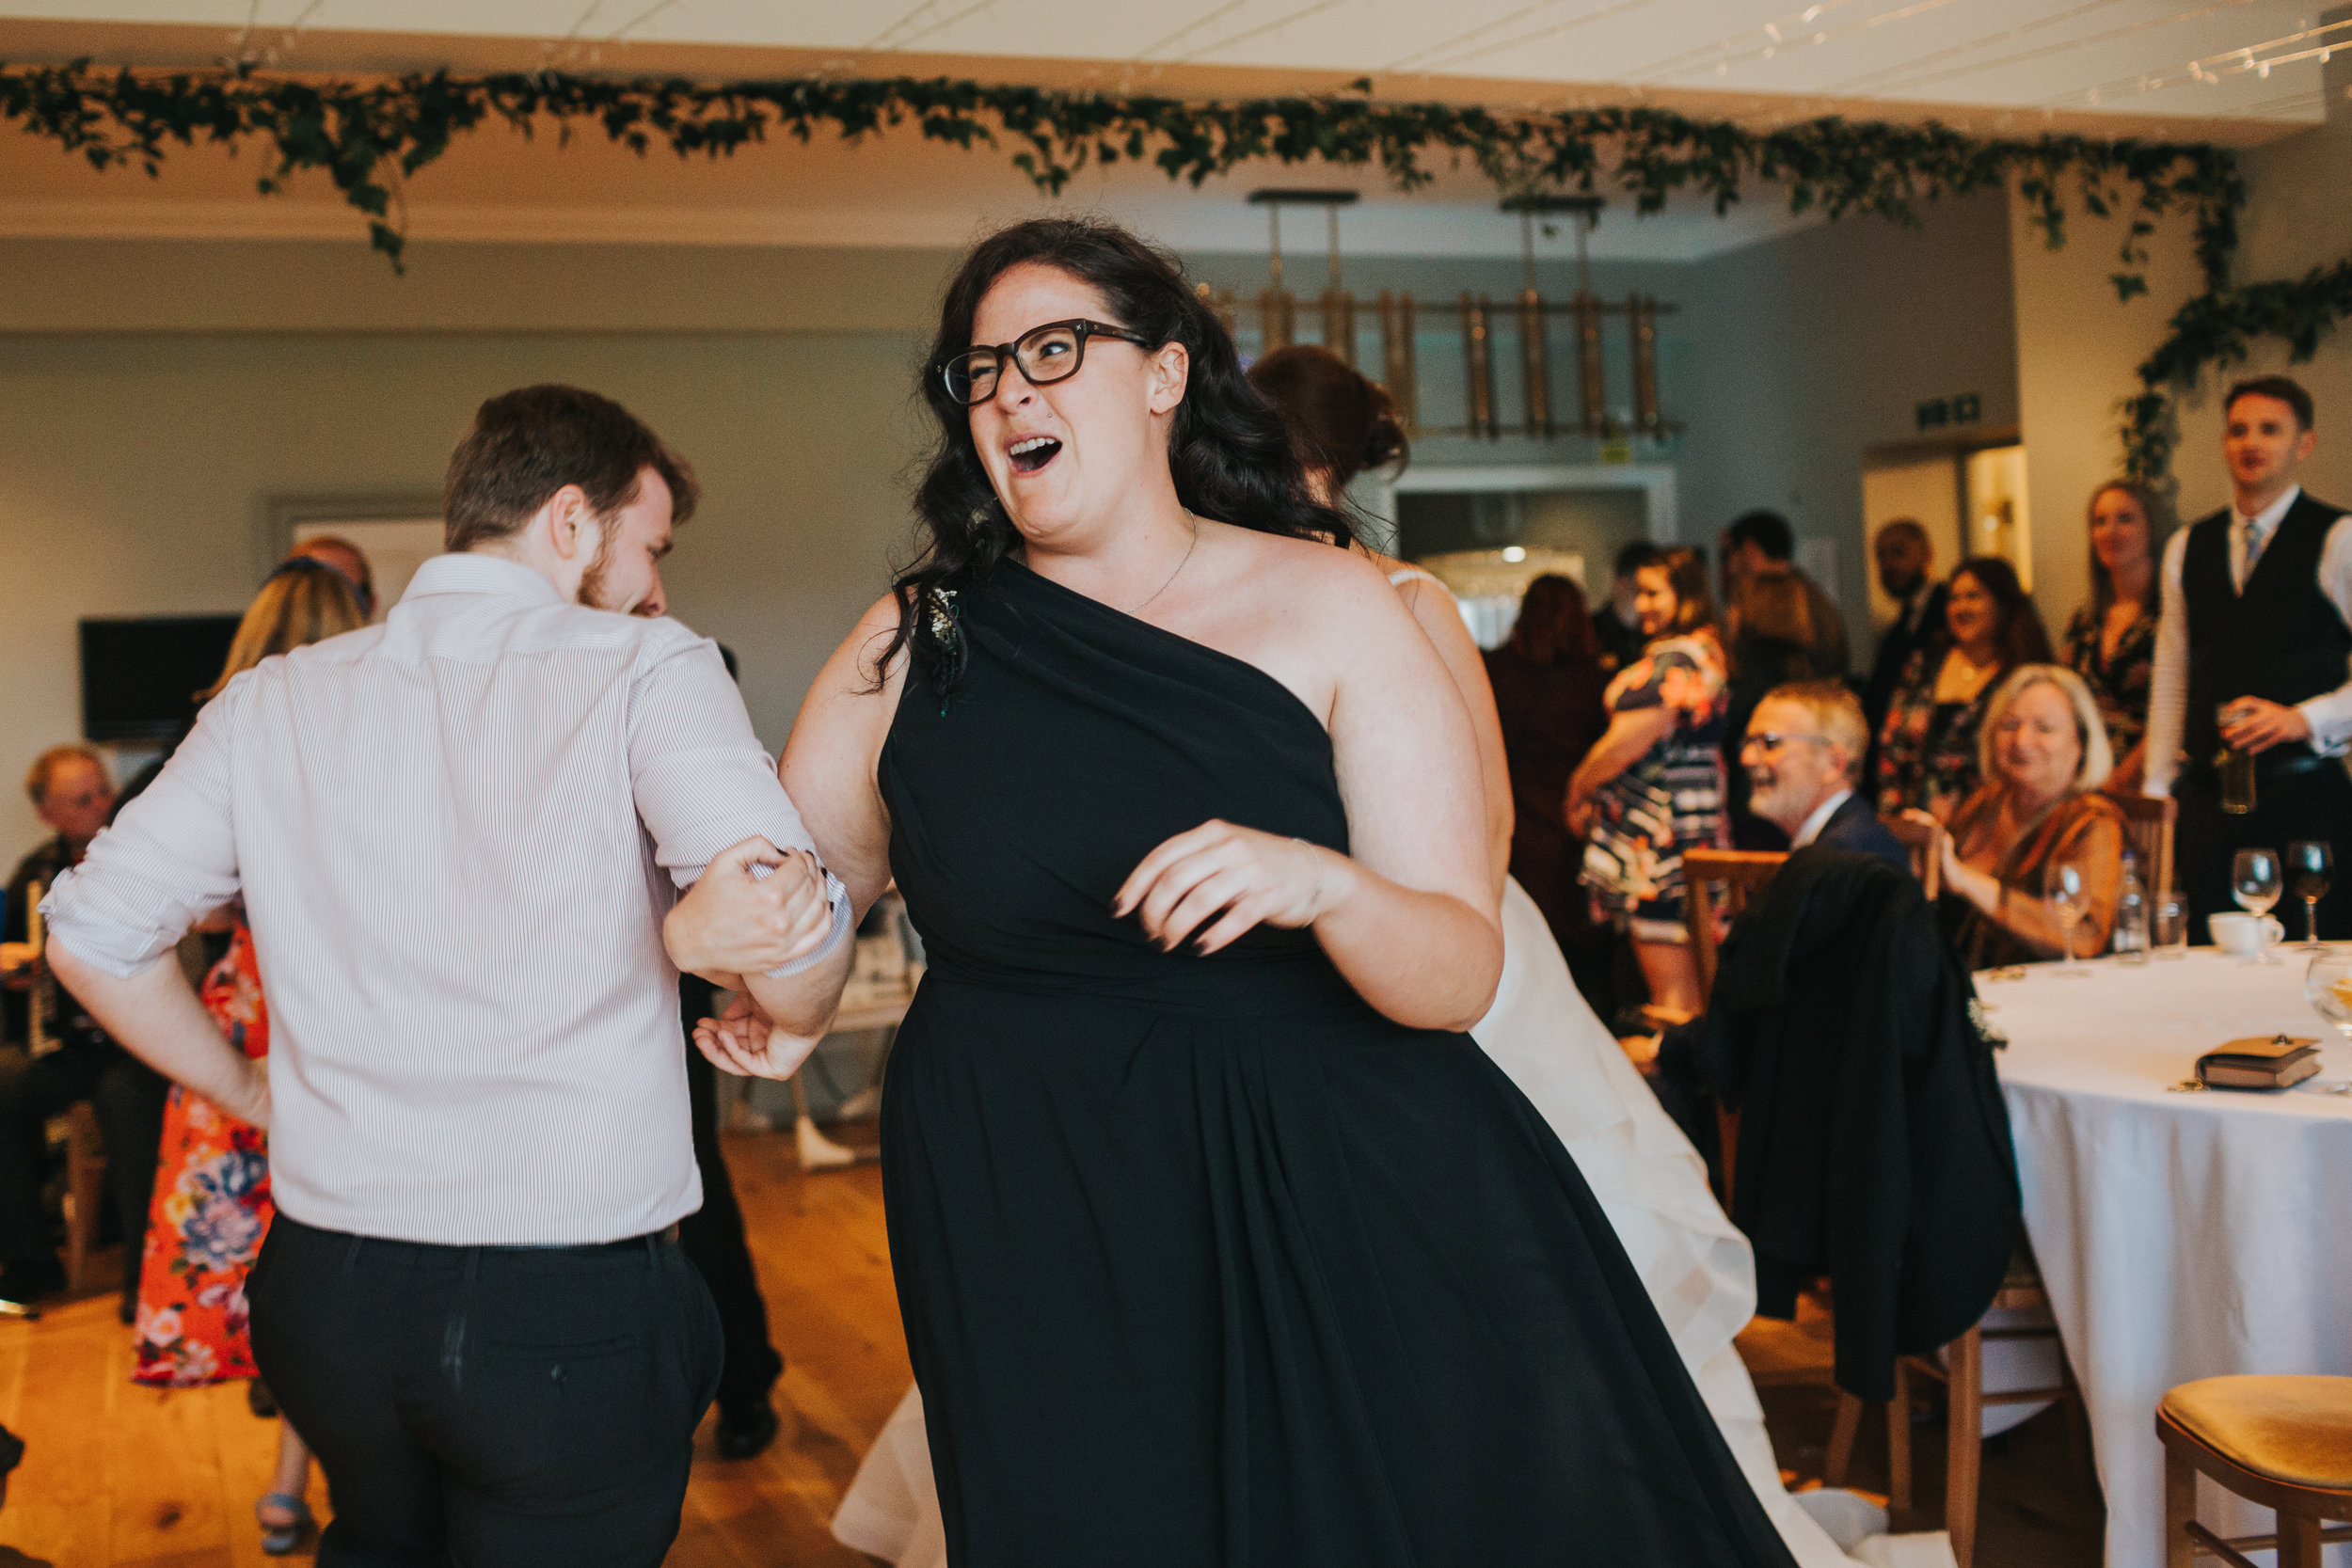 Wedding guest pulls funny face while dancing.